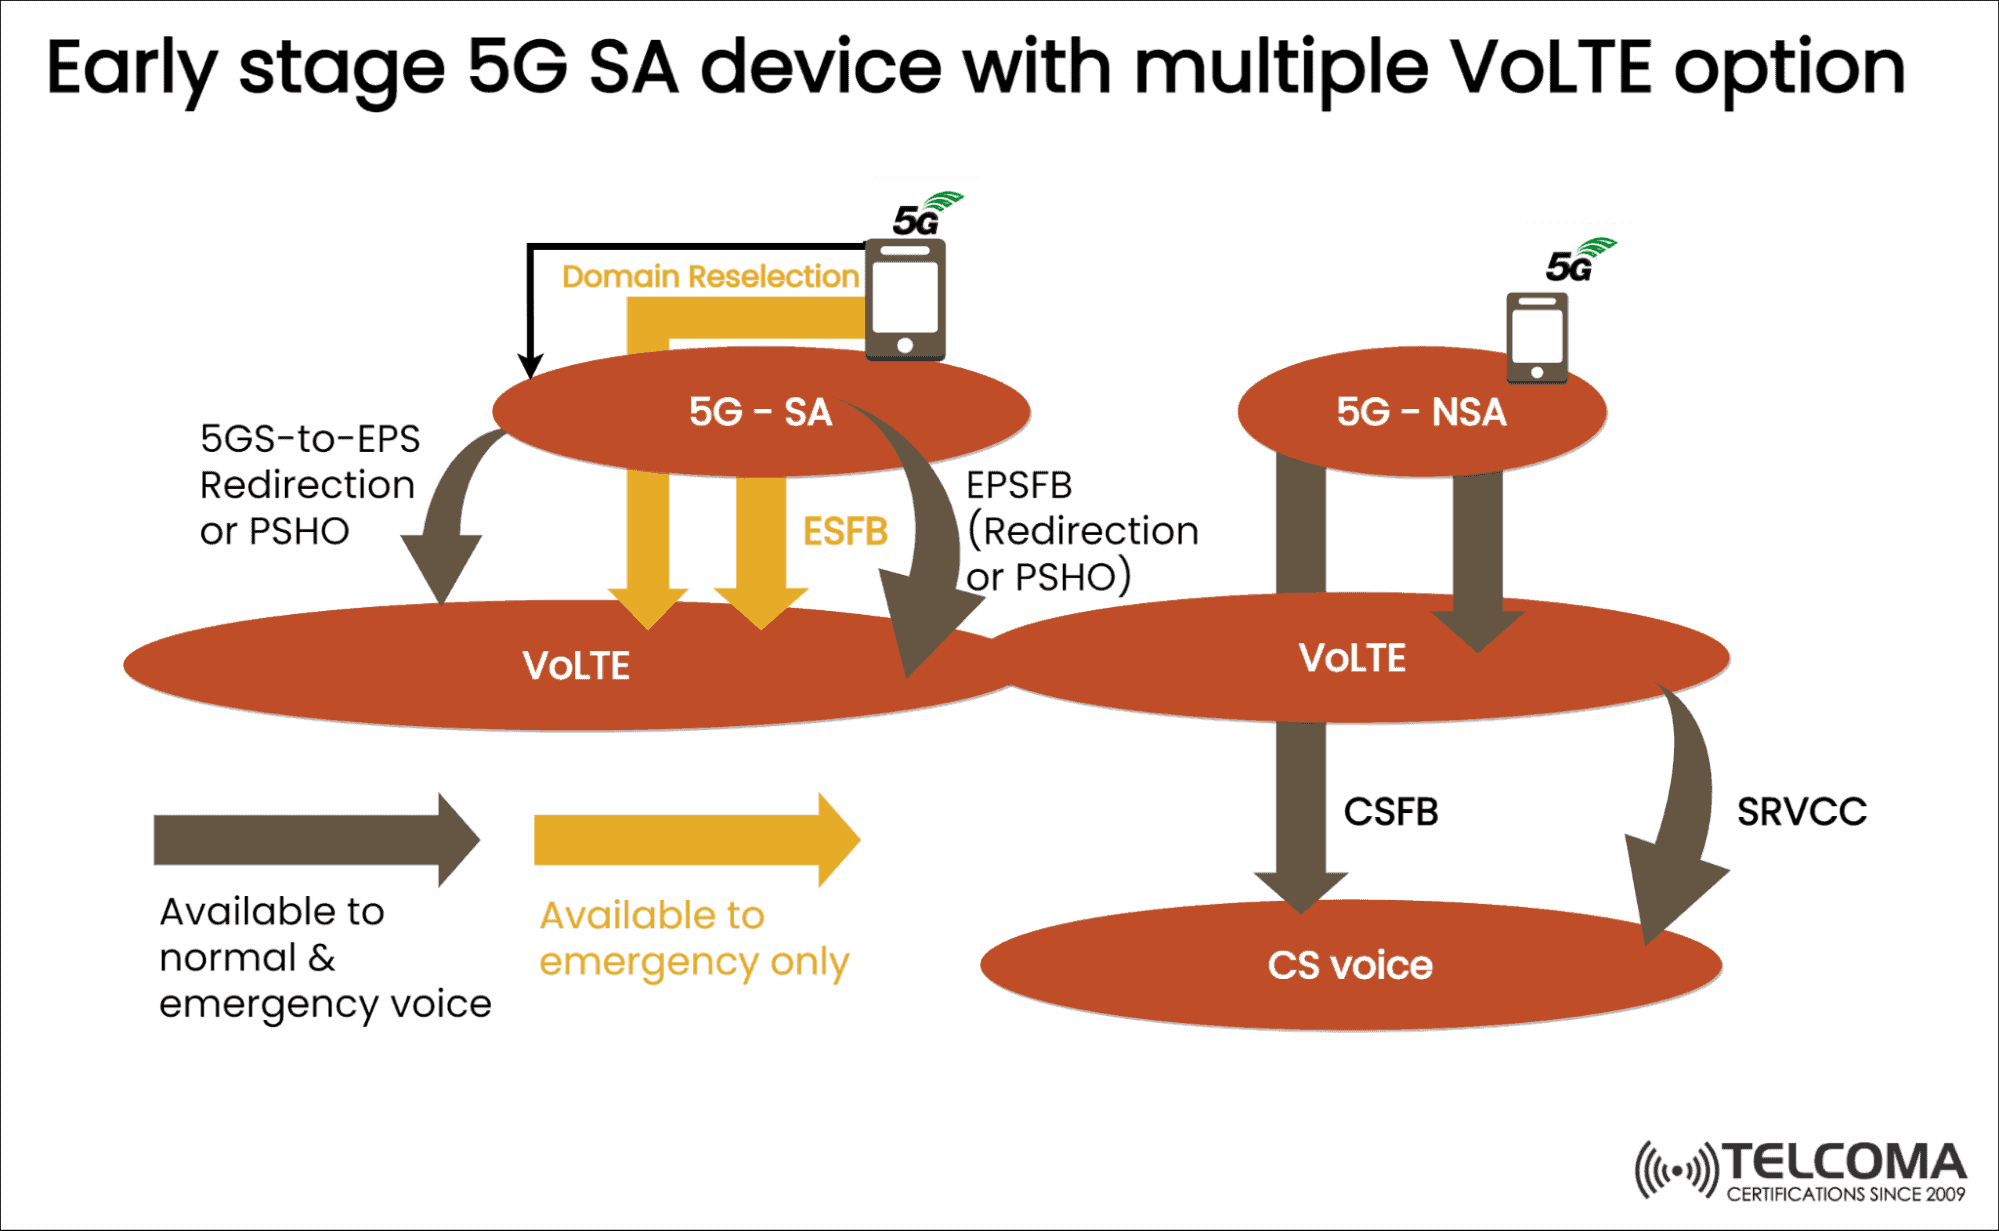 5g sa with multiple volte